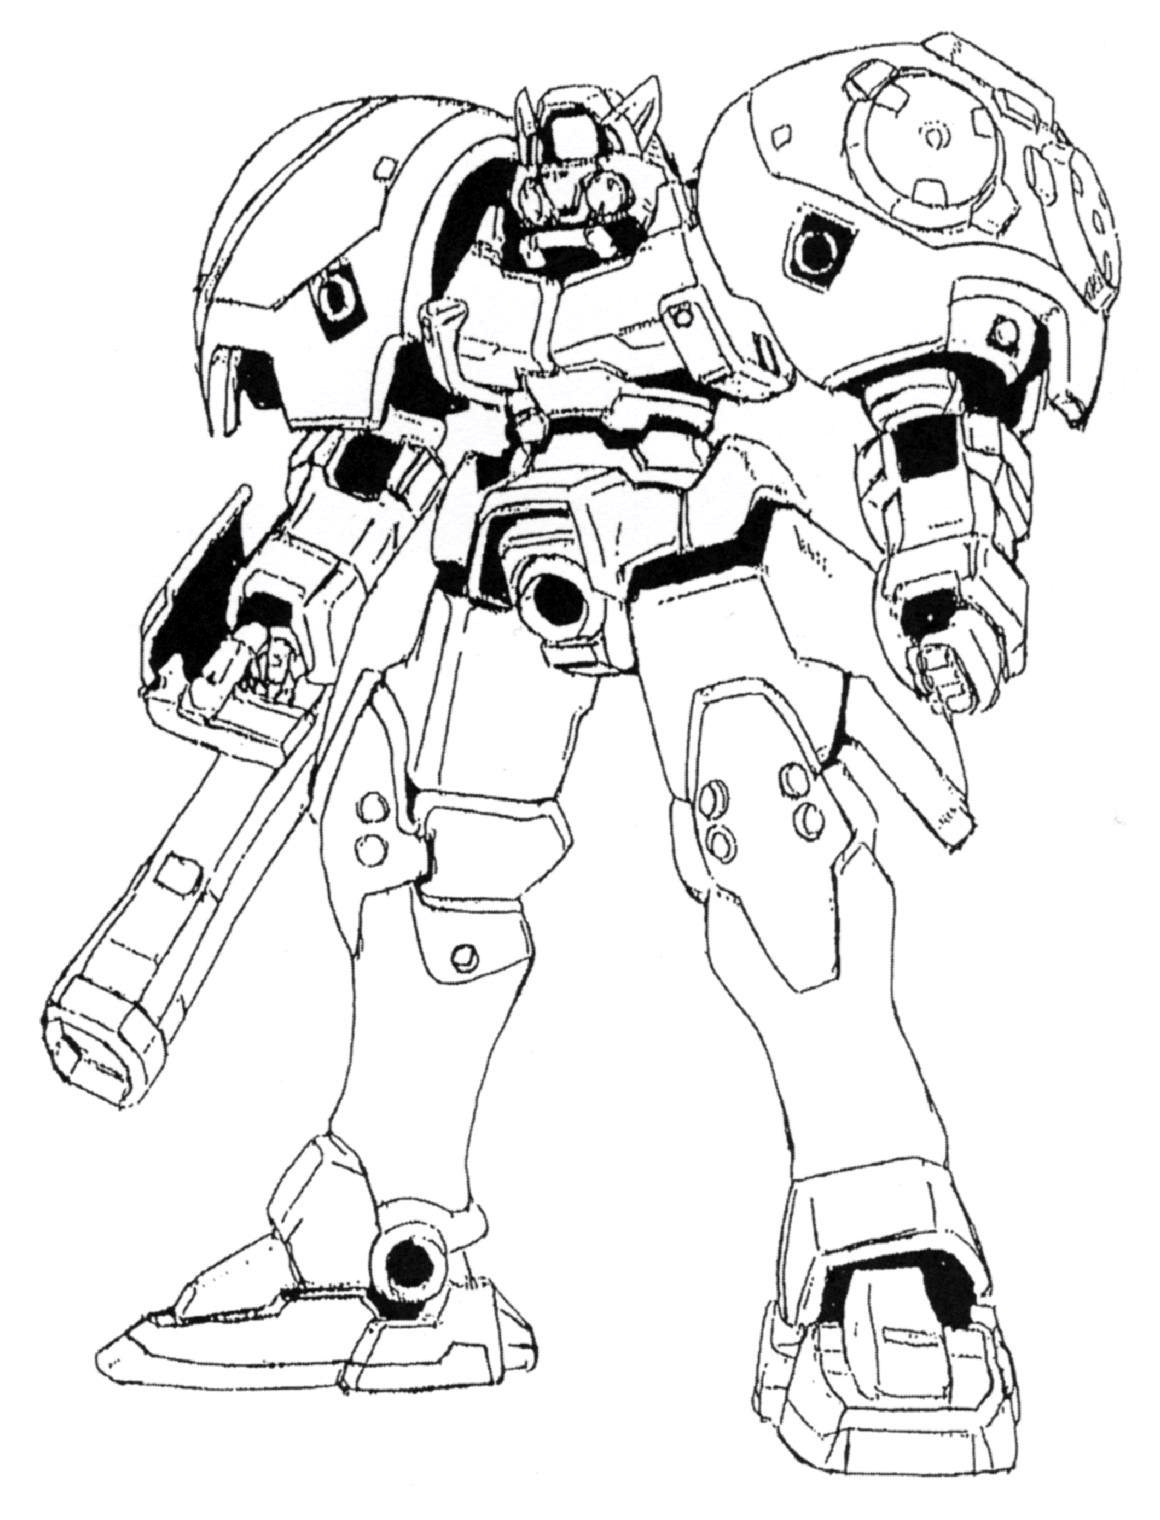 Image oz 02md virgo front view the gundam for Gundam wing coloring pages